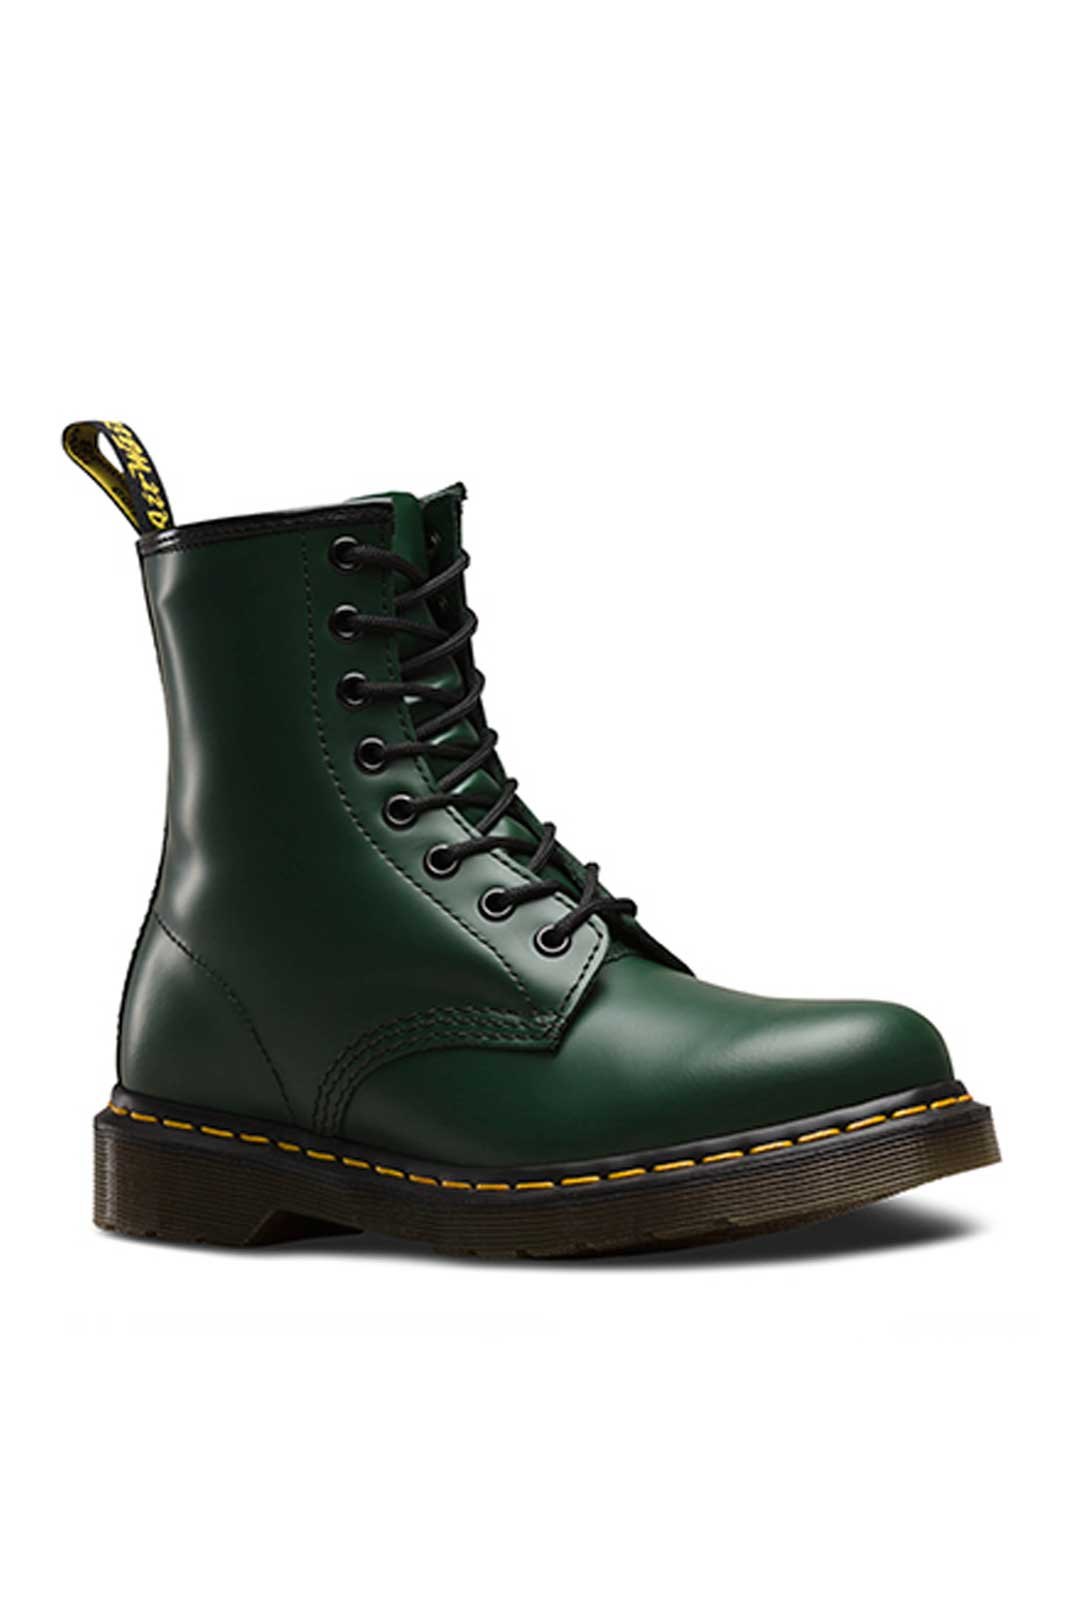 dr martens 1460 8 eye green